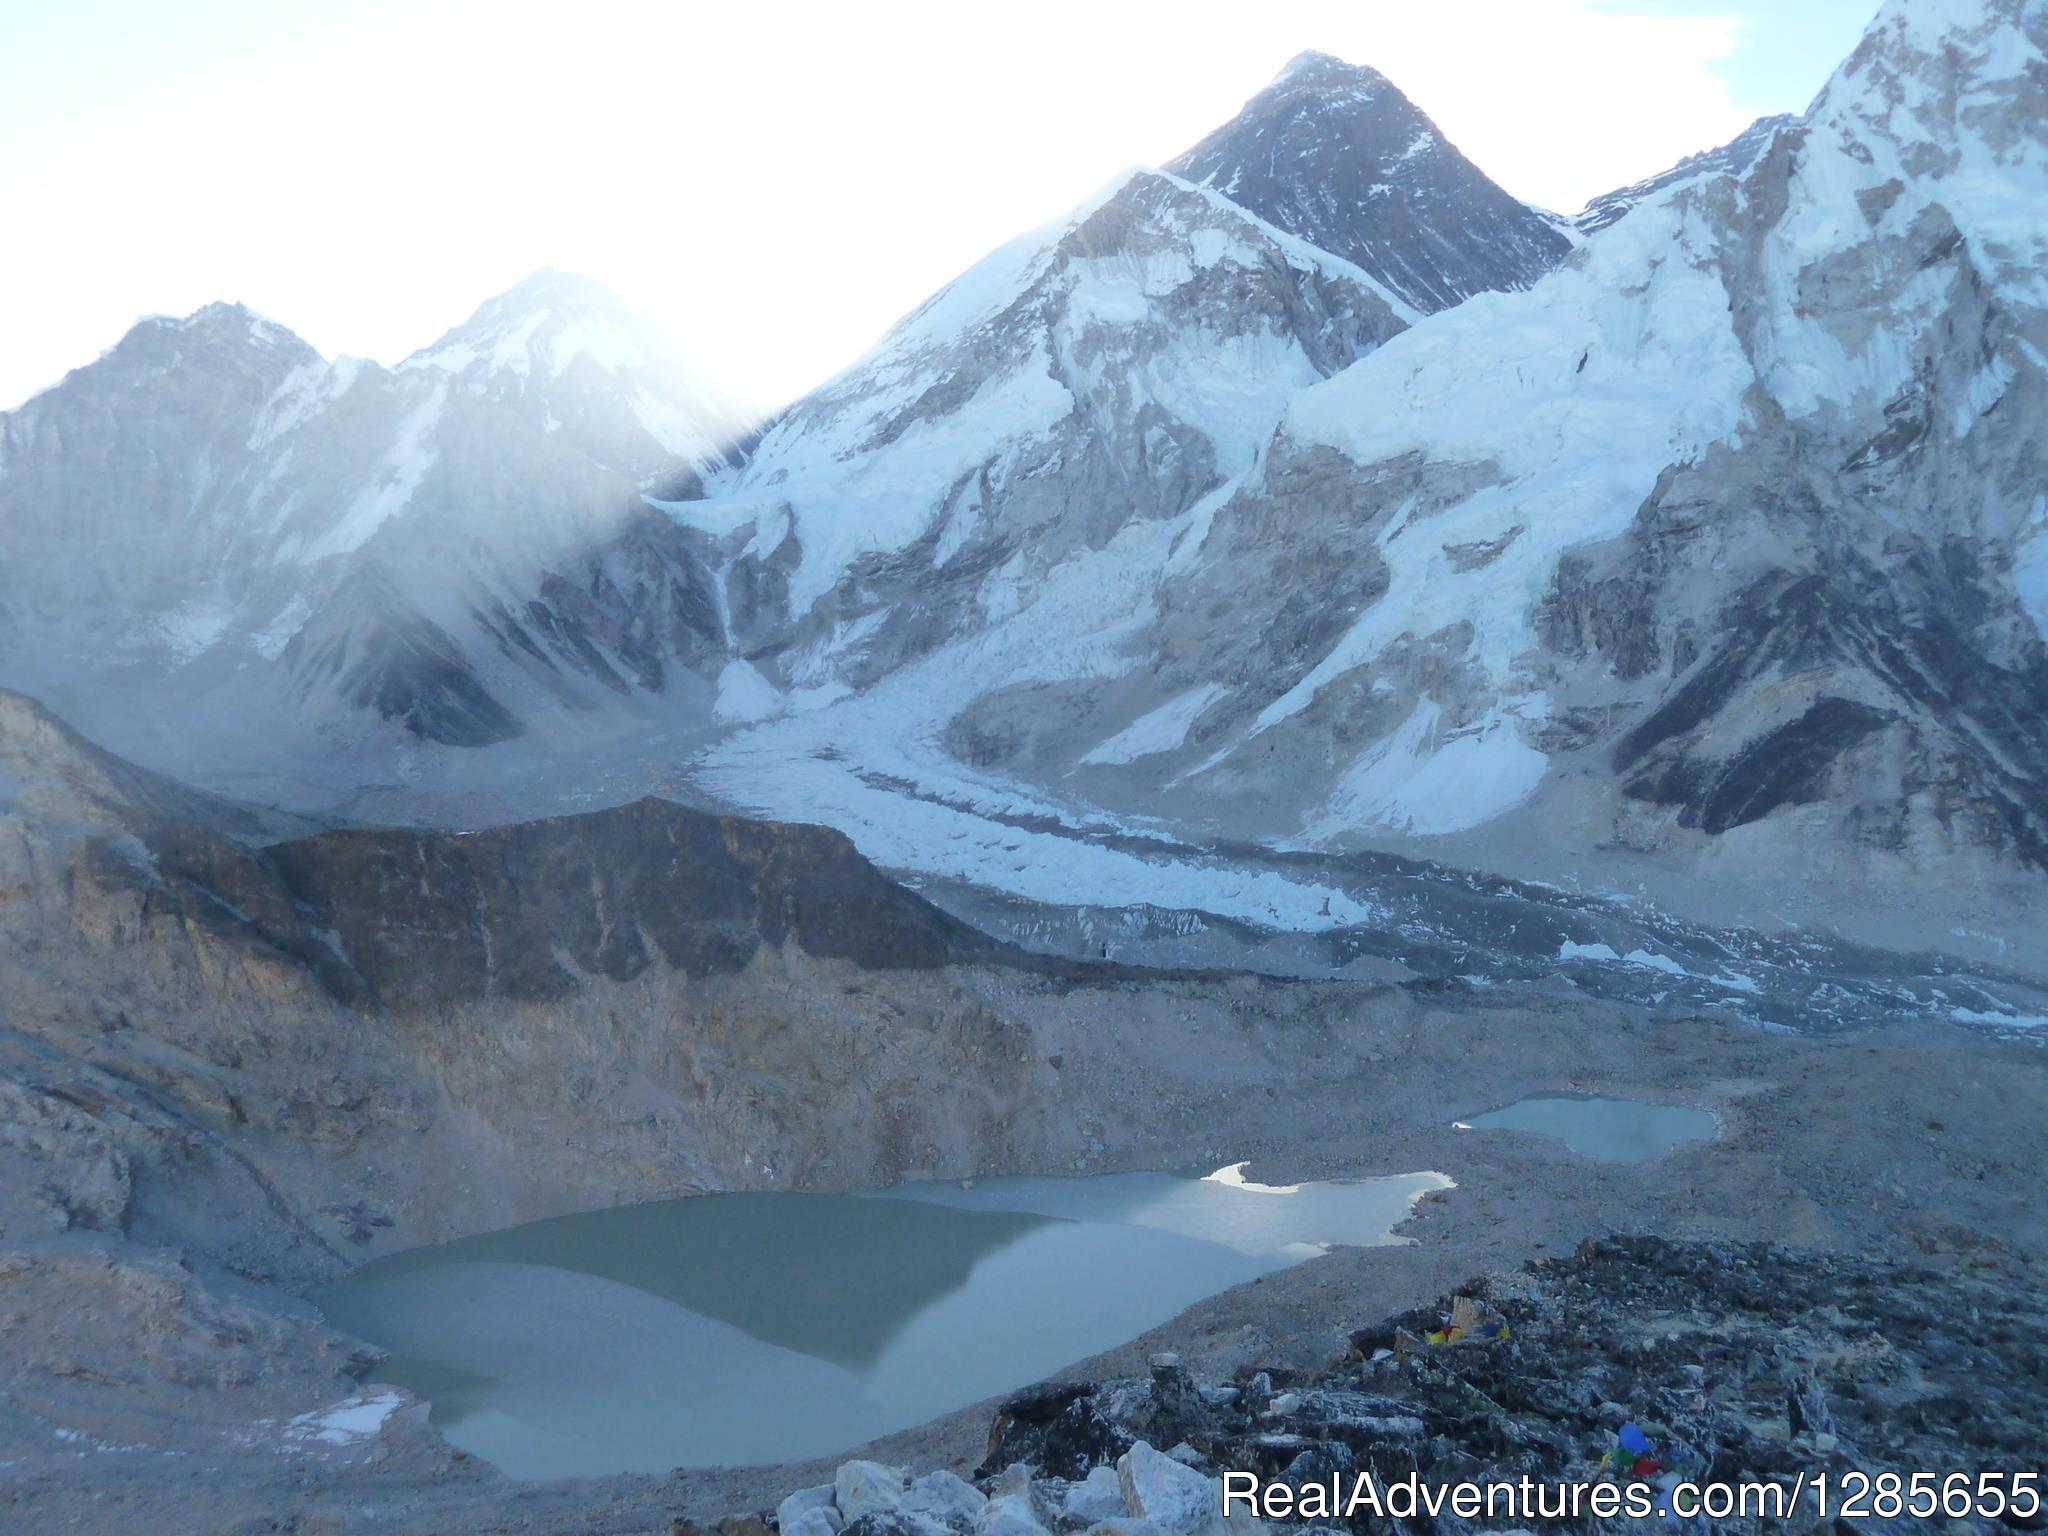 Khumbu glacier,and view of Everest